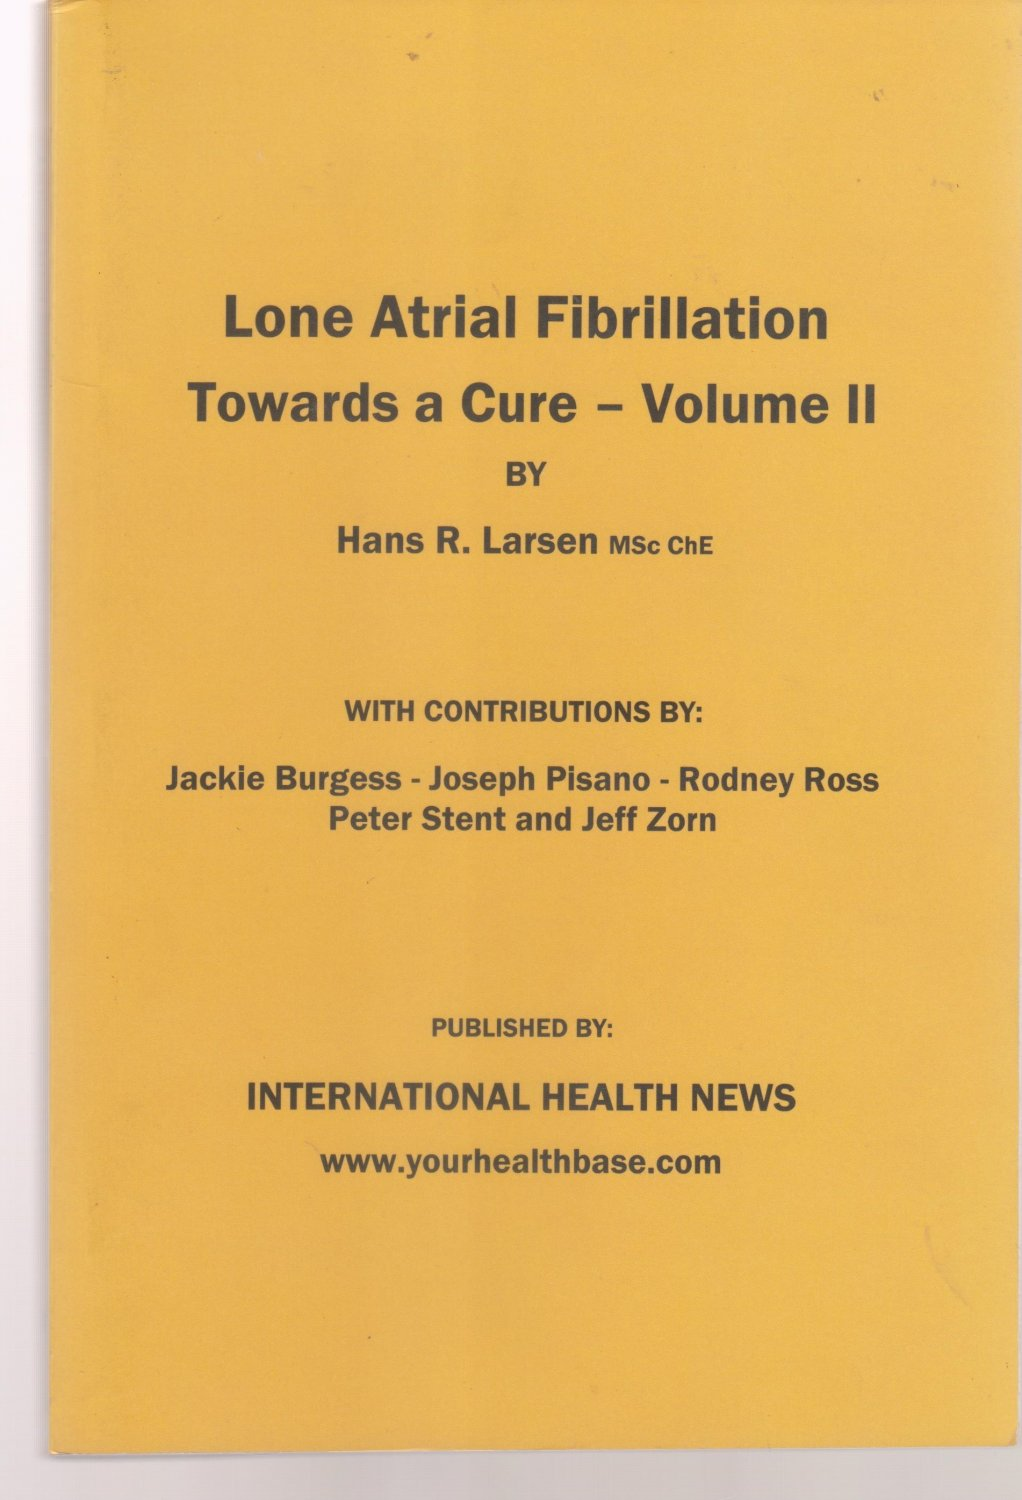 Lone Atrial Fibrilliation Towards a Cure Volume II  by Hans Larsen